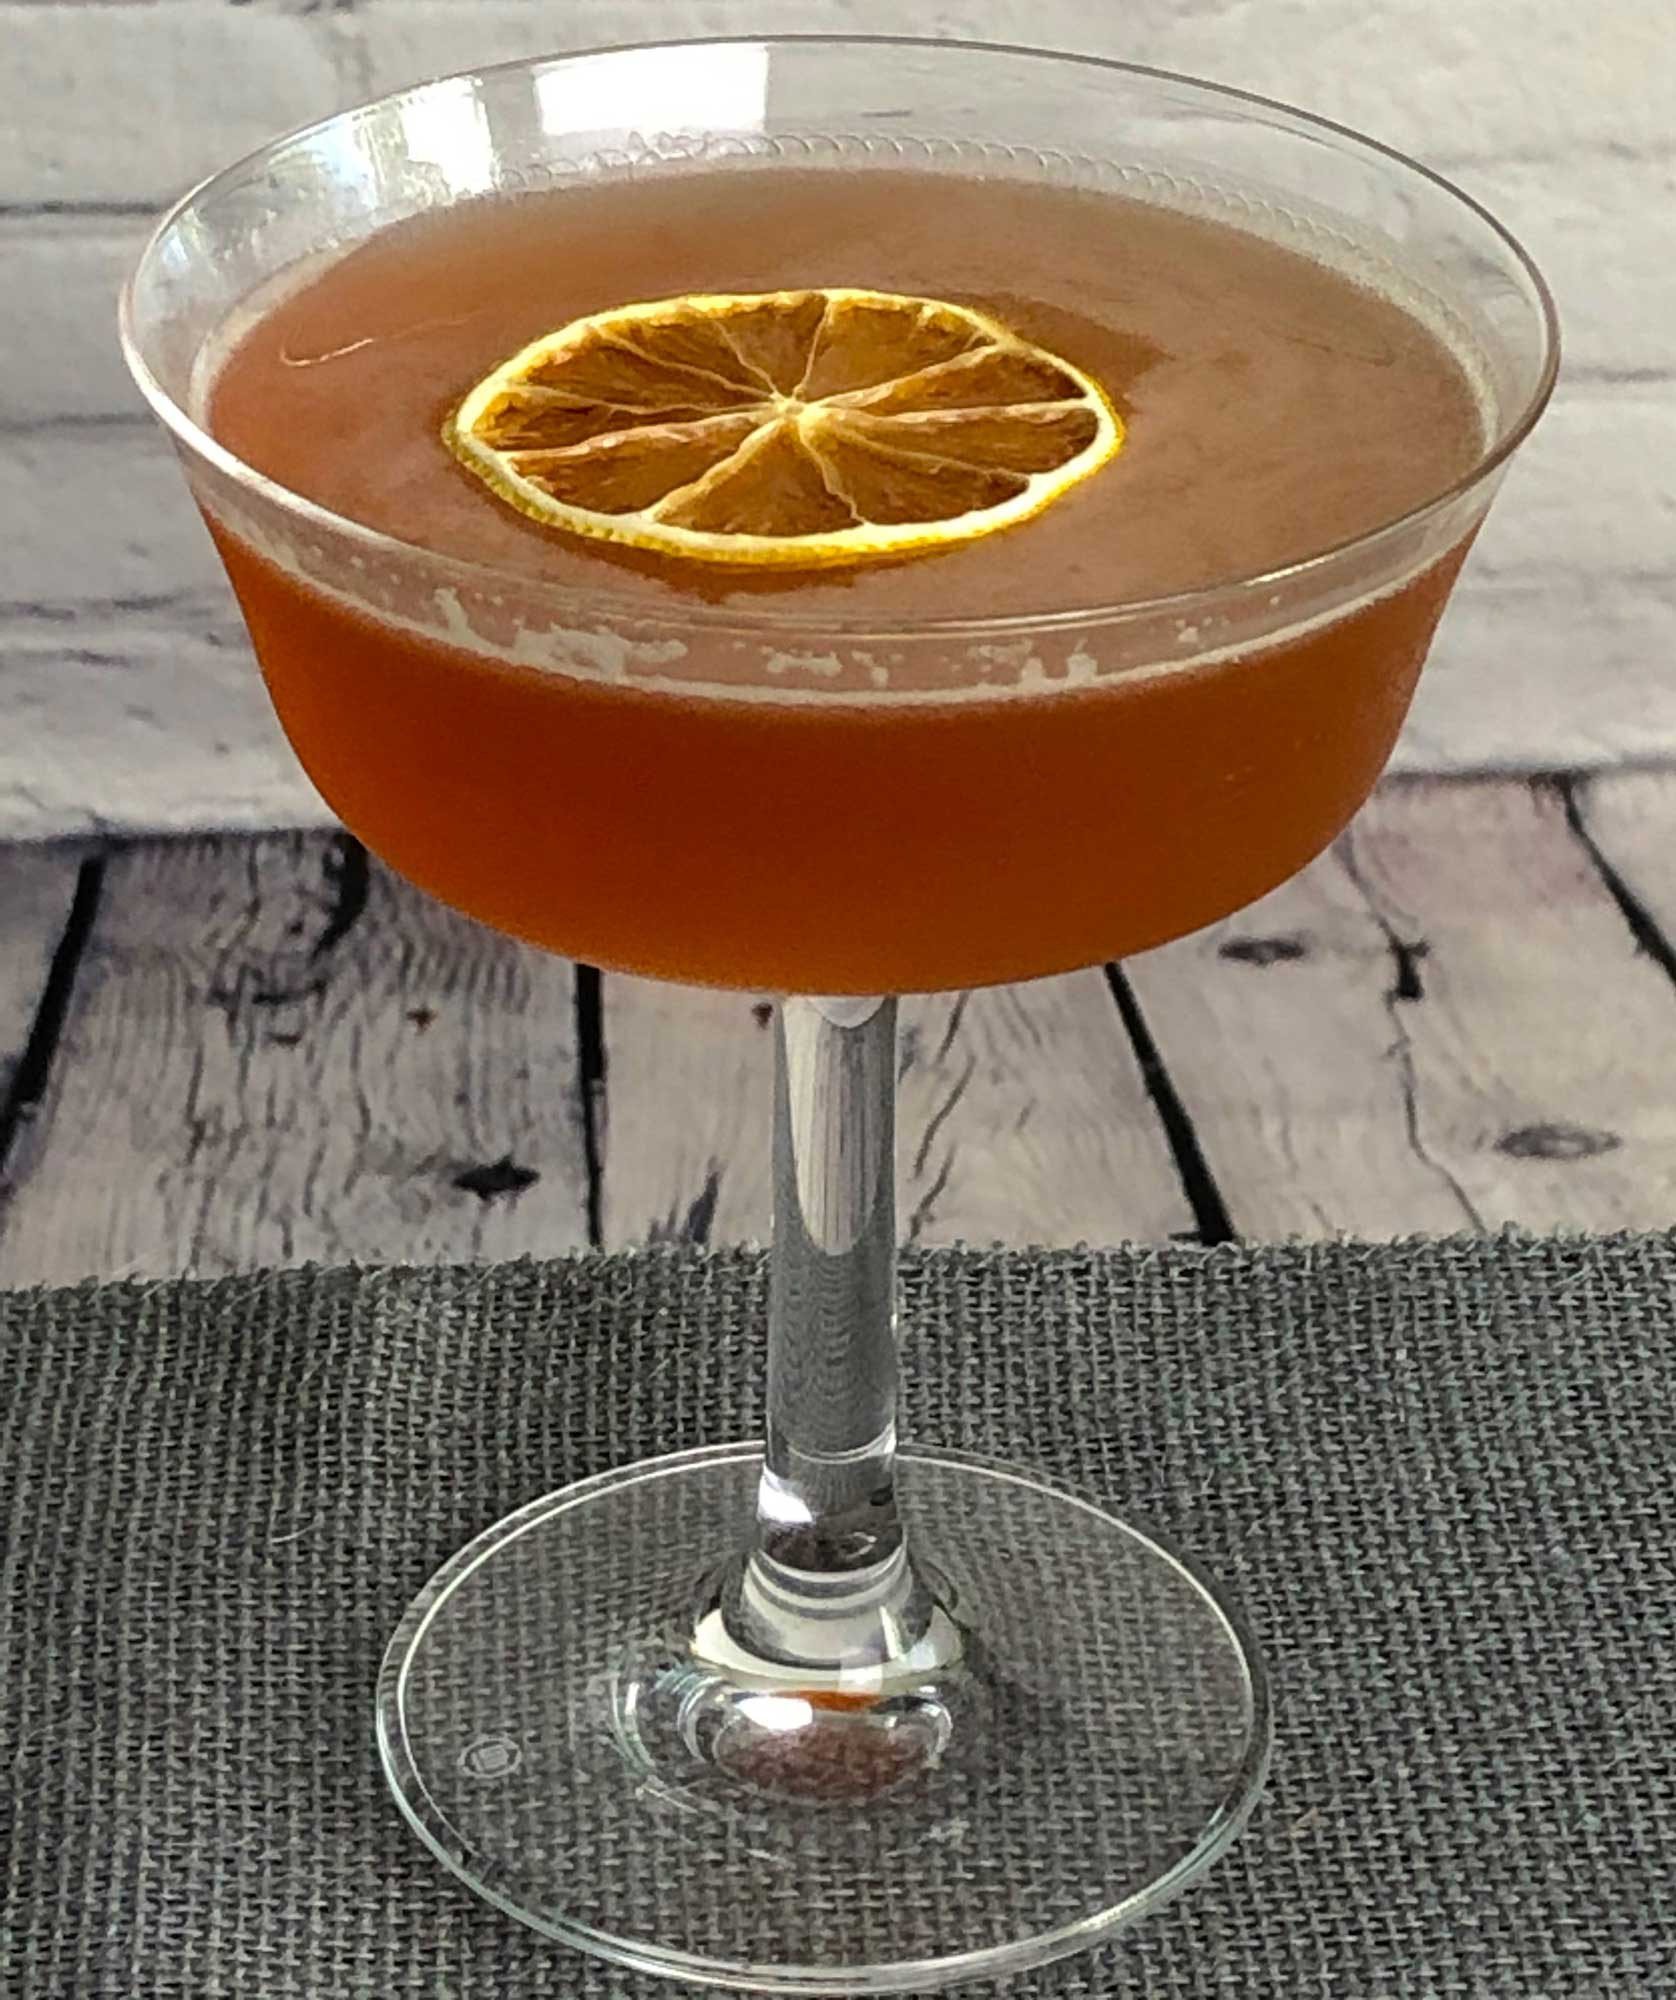 An example of the Hi-Hat Cocktail, the mixed drink (cocktail), variation of a drink from David Embury, The Fine Art of Mixing Drinks, featuring rye whiskey, Rothman & Winter Orchard Cherry Liqueur, and lemon juice; photo by Lee Edwards